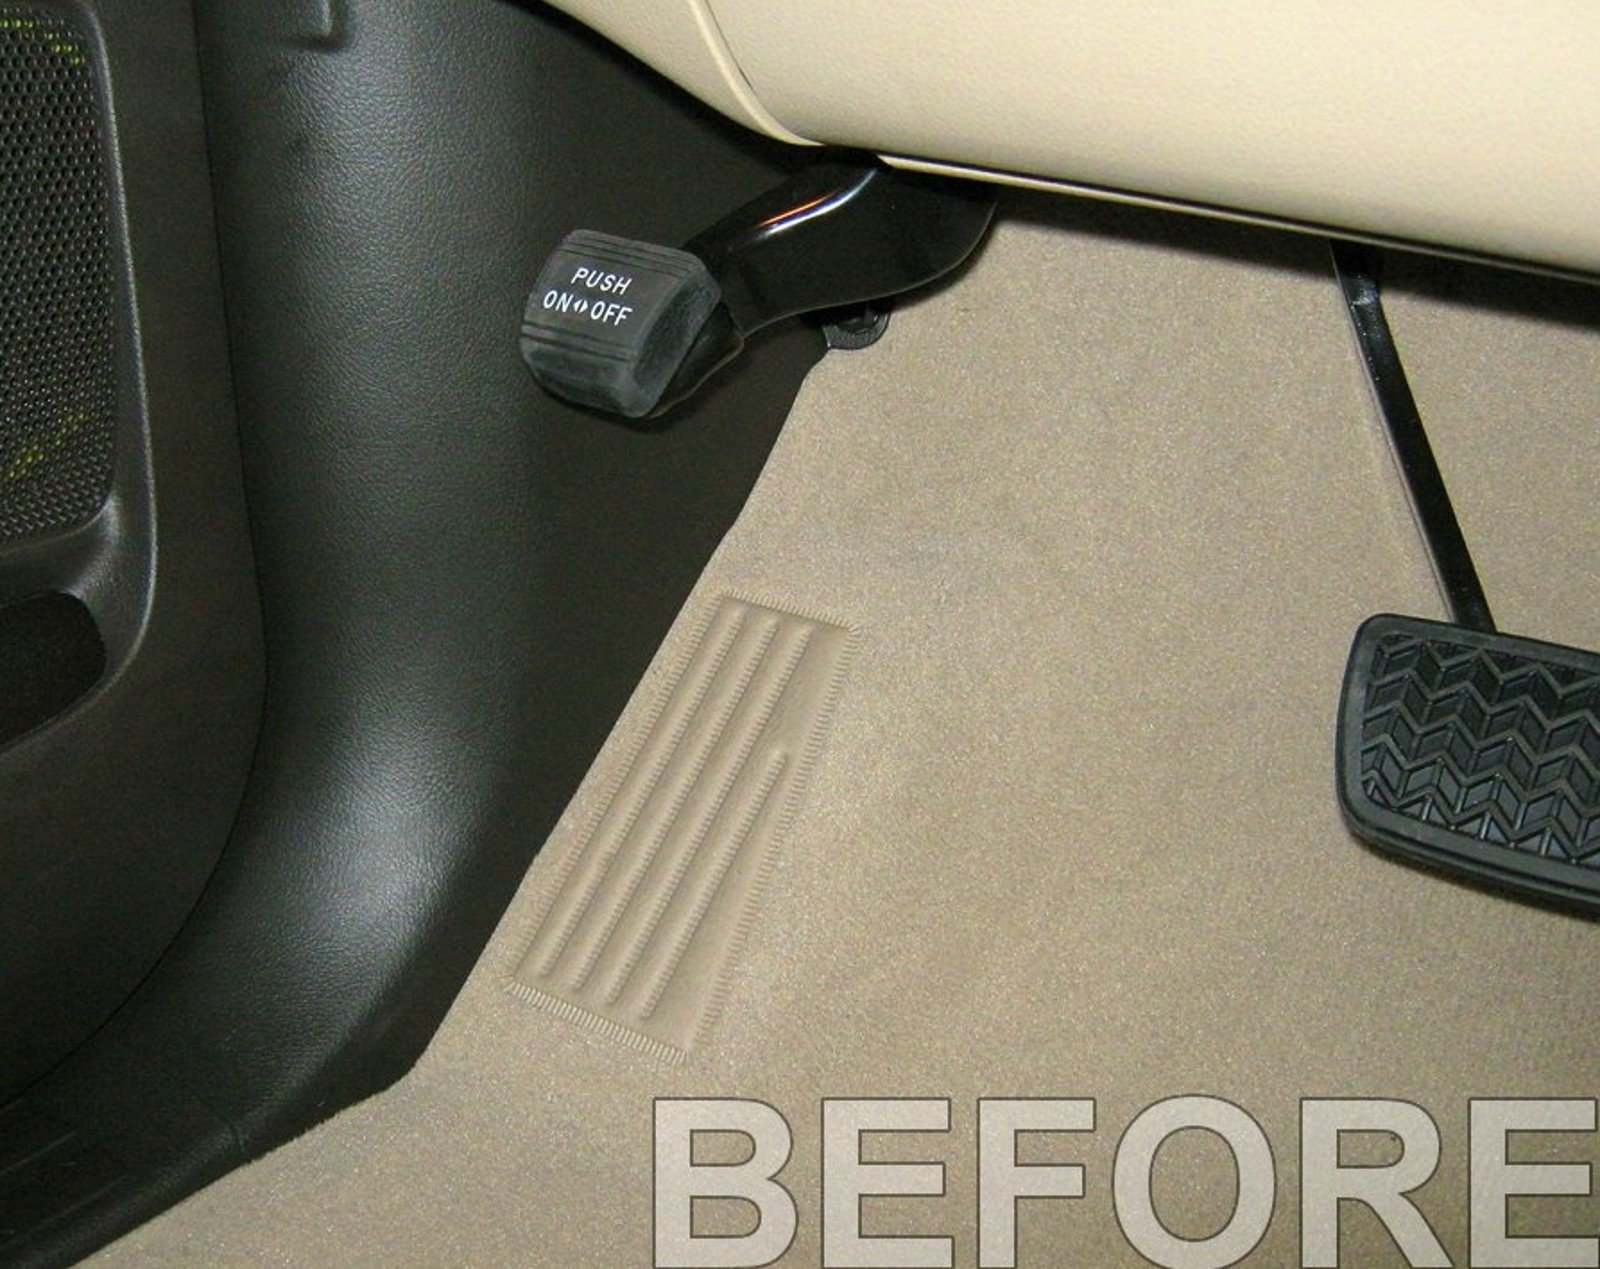 Kick Panel Speaker Mounts for Toyota SEQUOIA & TUNDRA CREWMAX Regular & Double Cab by Q-Forms (Image #2)